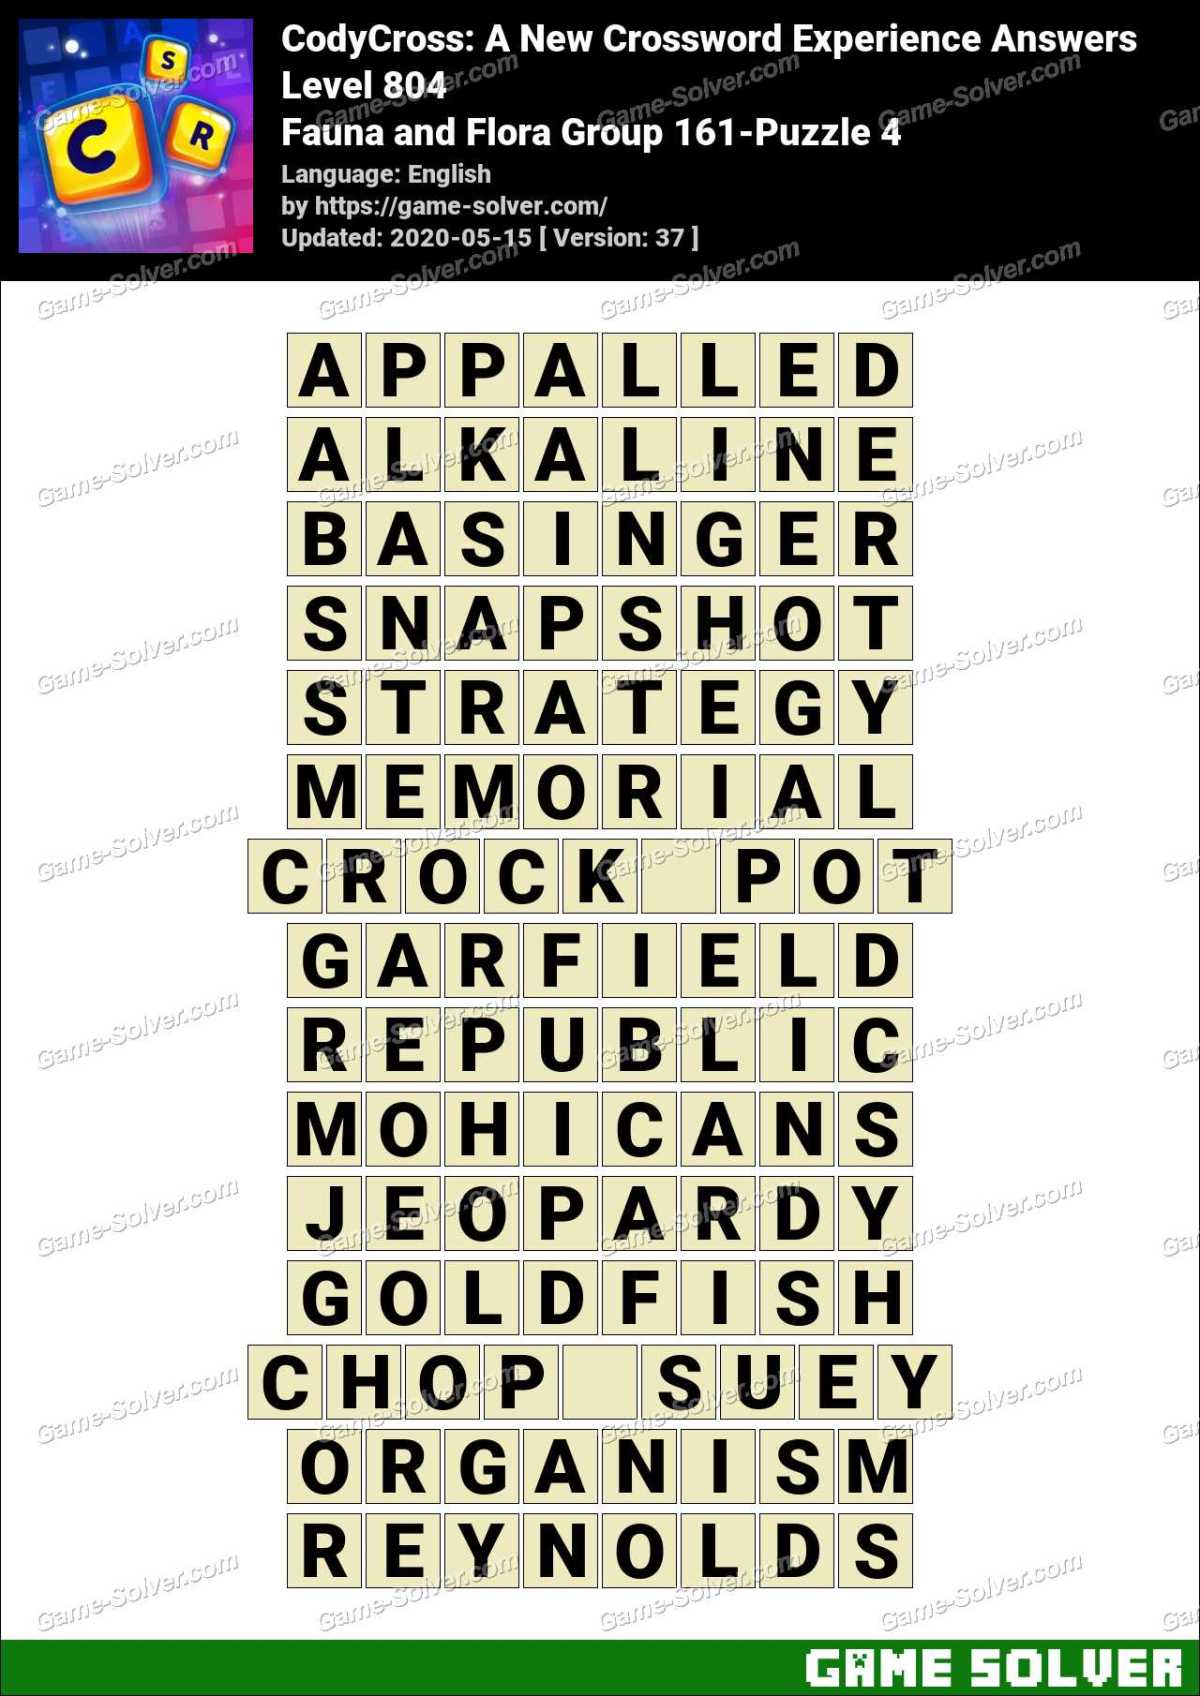 CodyCross Fauna and Flora Group 161-Puzzle 4 Answers